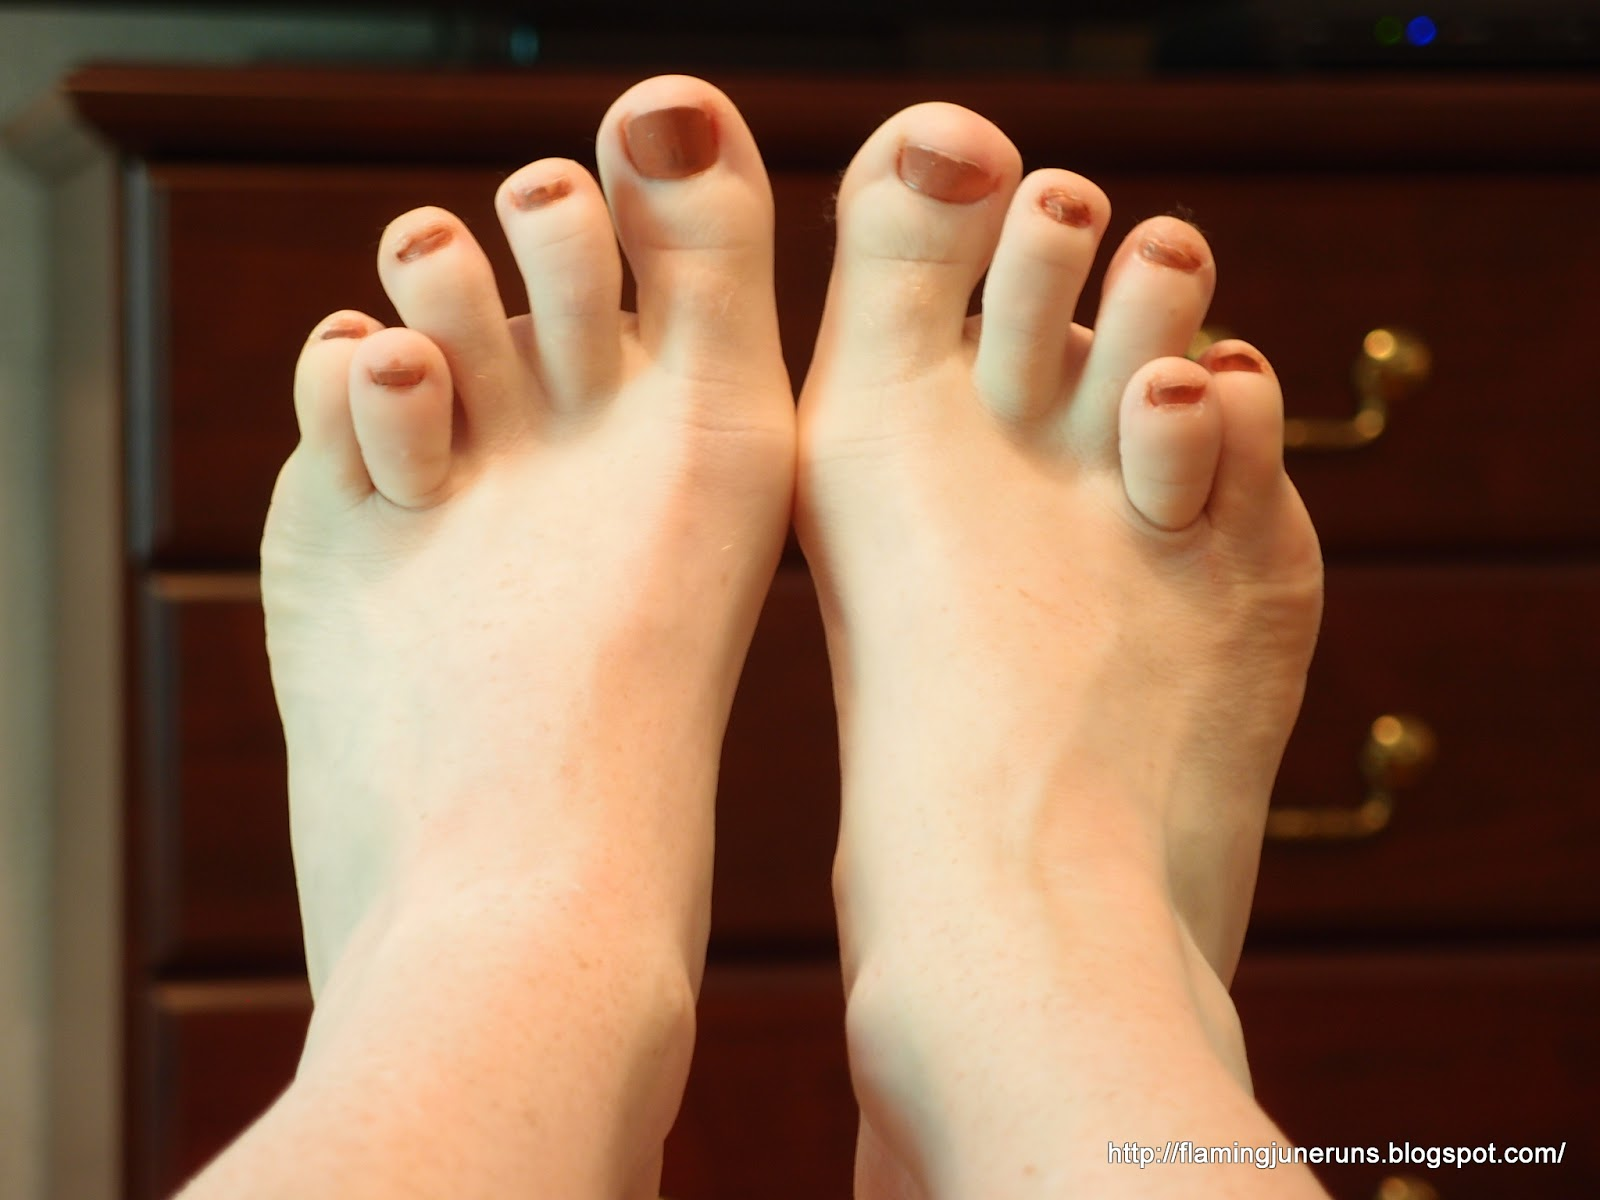 140f20574 But today - Get Real Wednesday - I am revealing my ugly feet to total  strangers in internet-land! I am so brave!